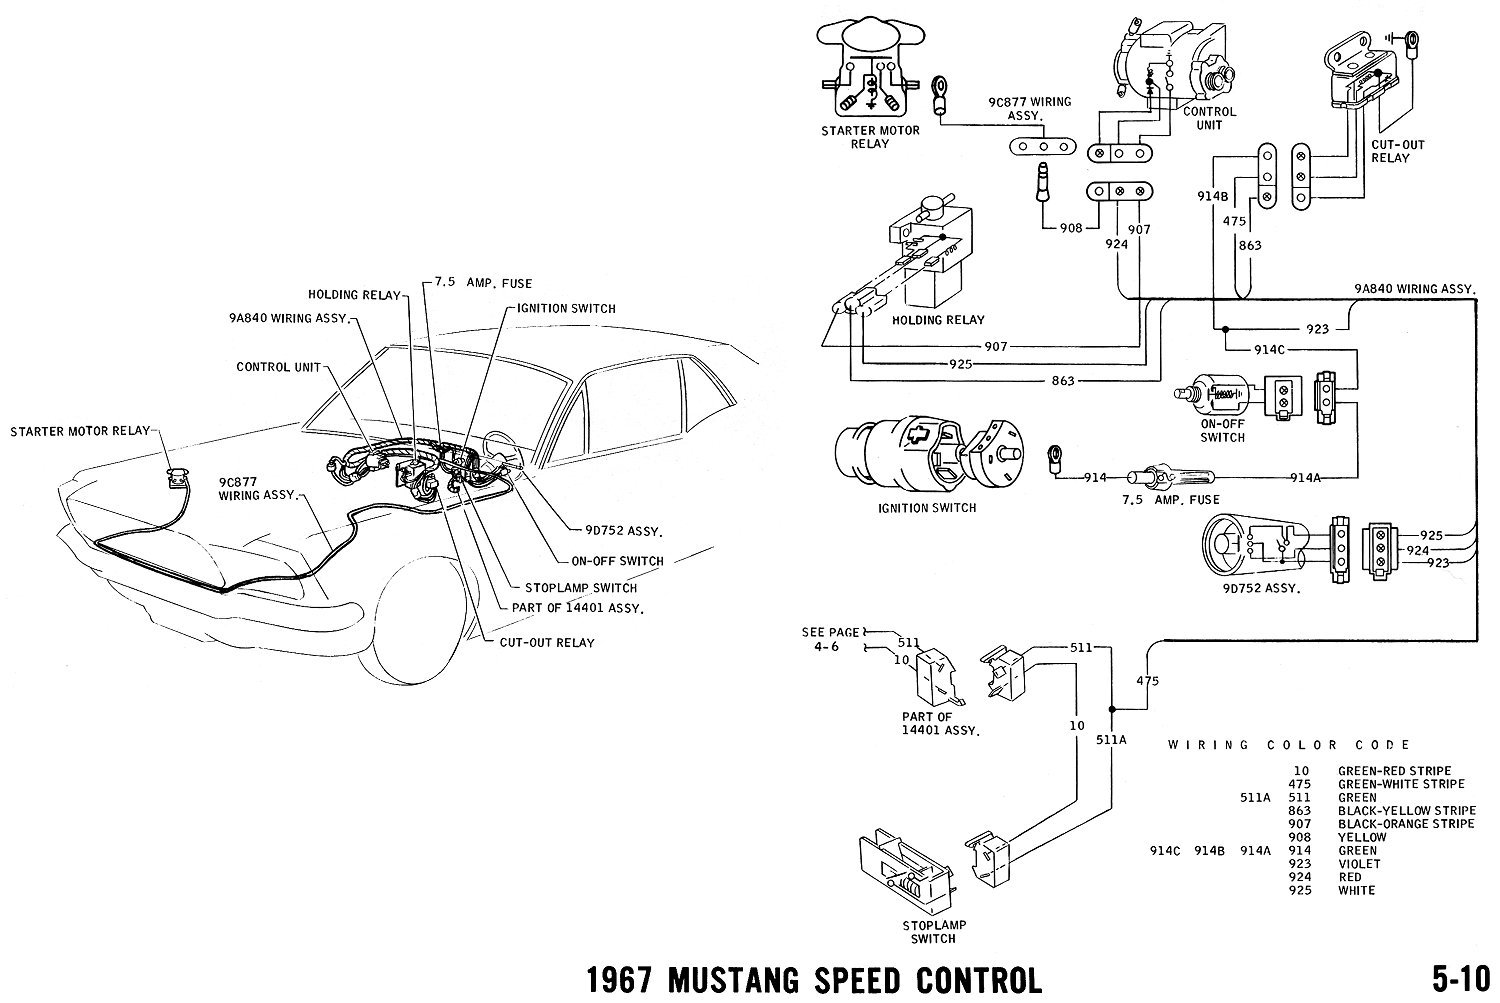 1967 Mustang Wiring And Vacuum Diagrams on 1988 mustang convertible top wiring diagram